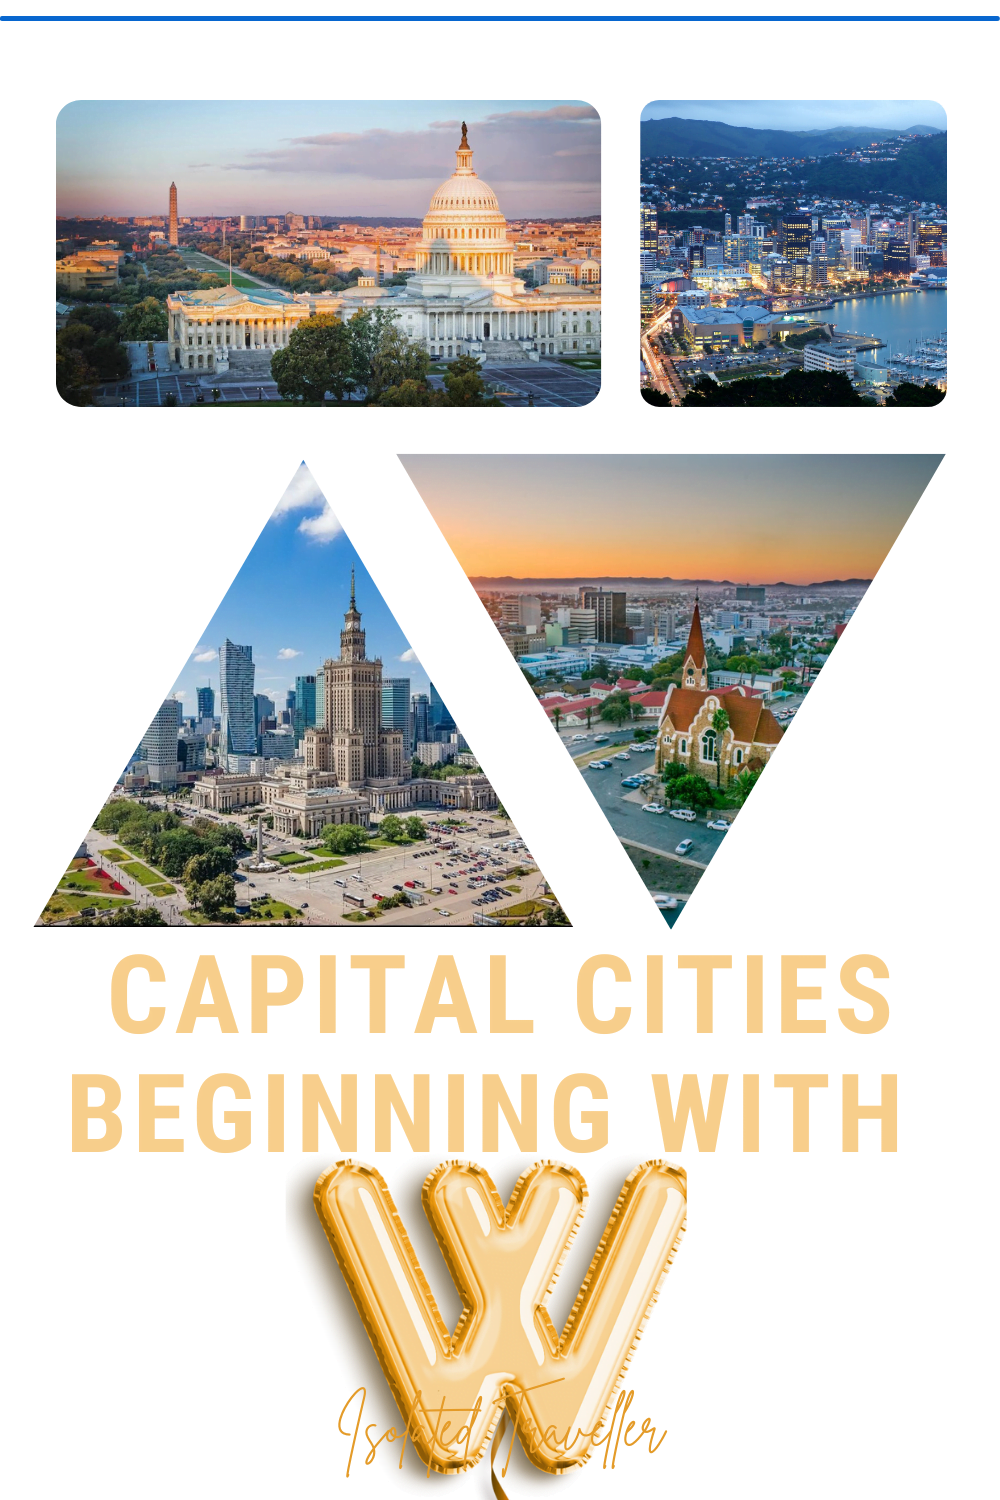 Capital Cities beginning with W